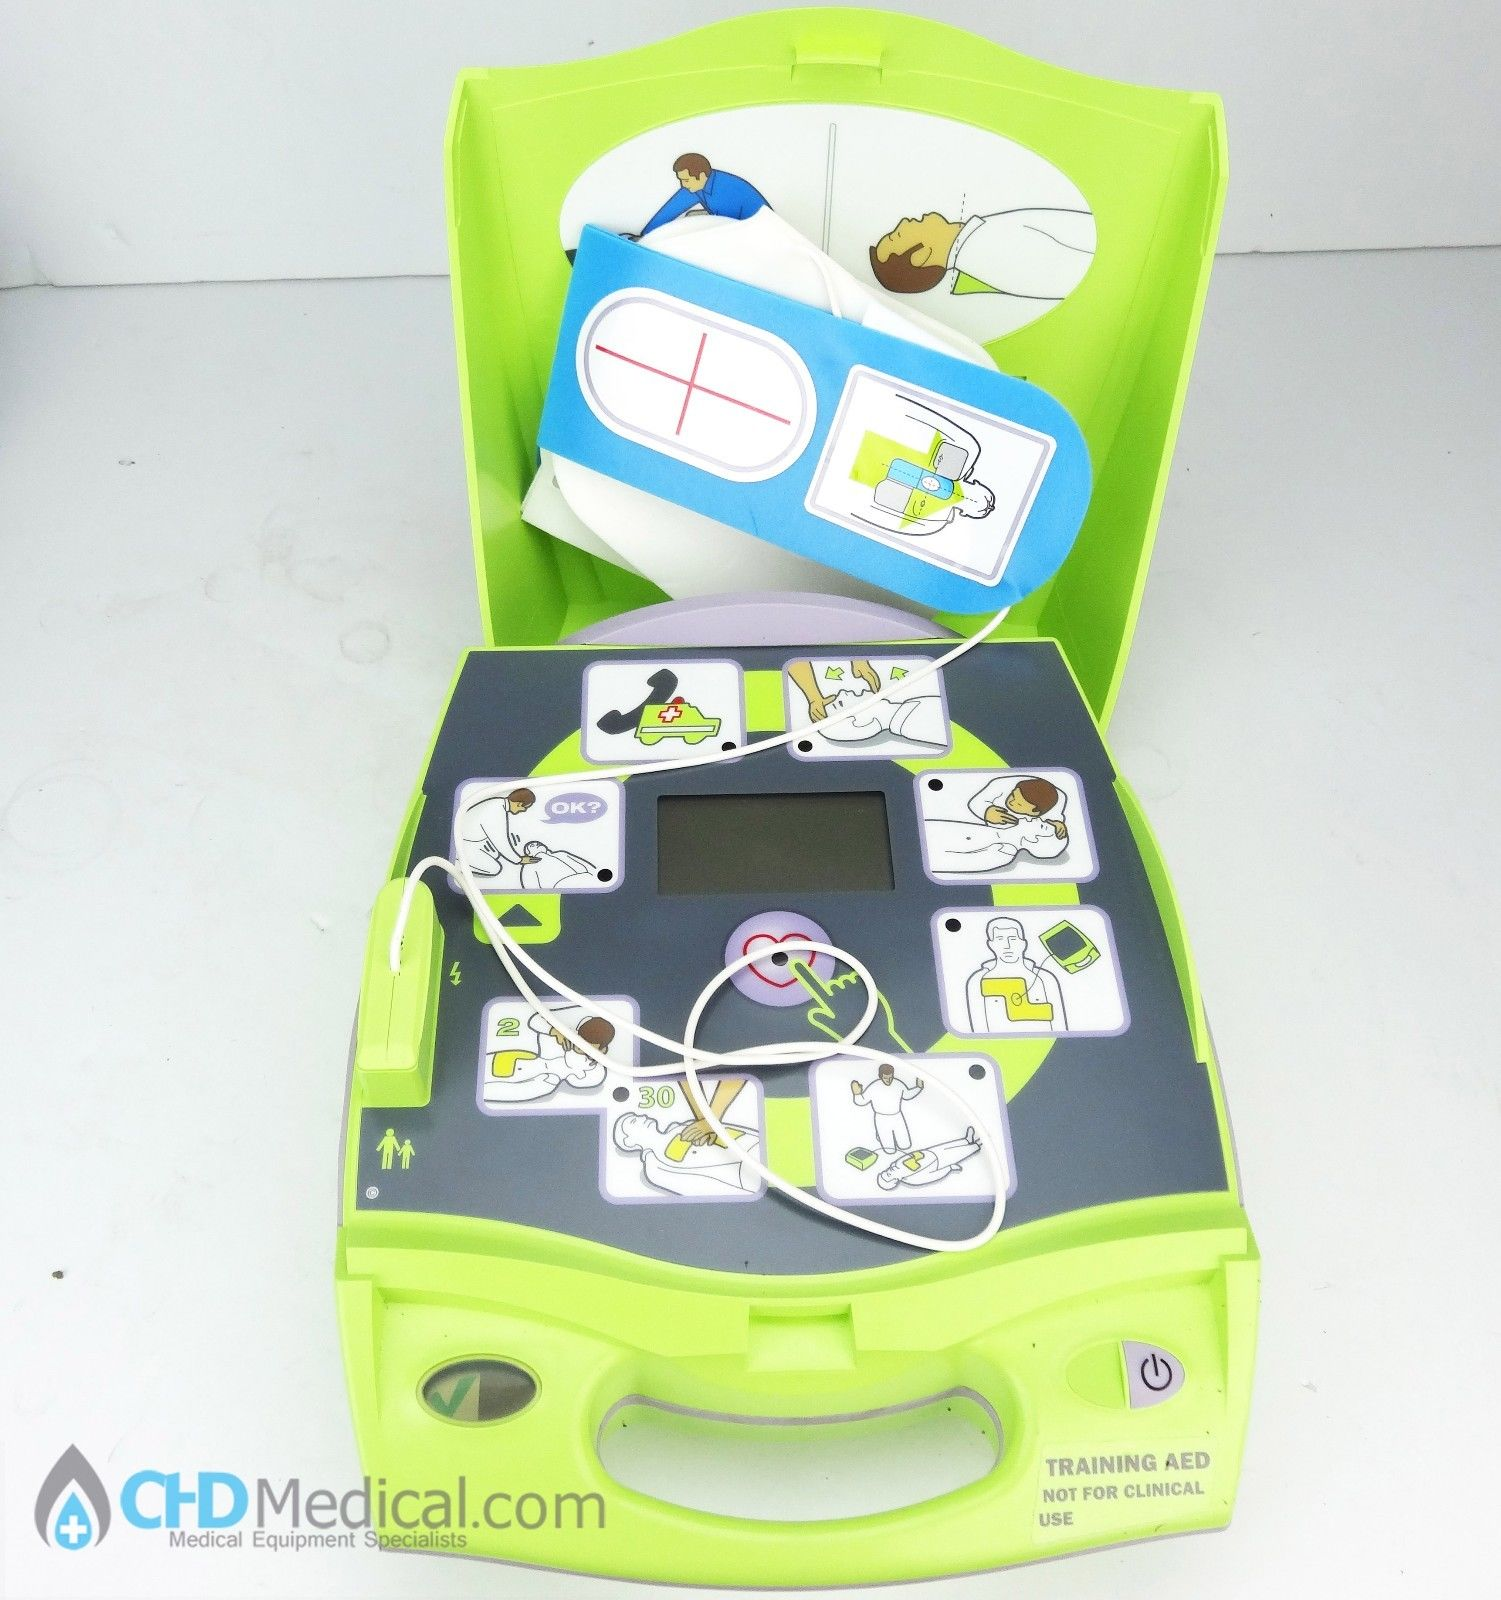 Zoll AED Plus Trainer w/ Pads for Training CPR/Basic Life Support